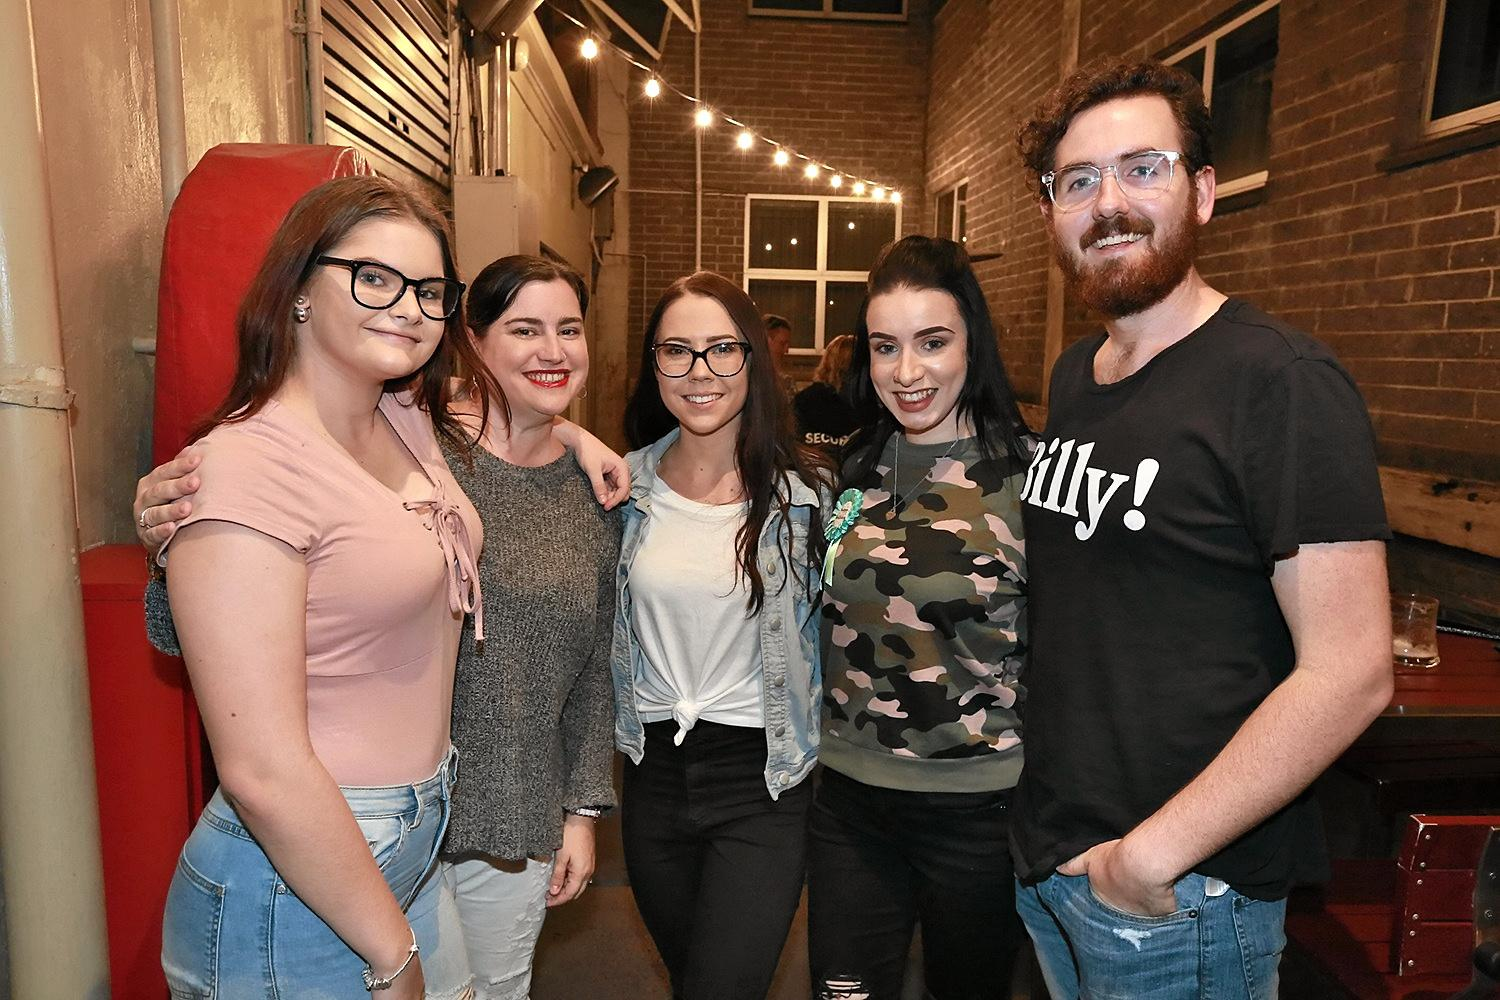 L-R Taylah Twigg, Renee Gibbins, Tayla Reed, Kim Harney and Orson Saunders at the Ginger Mule.